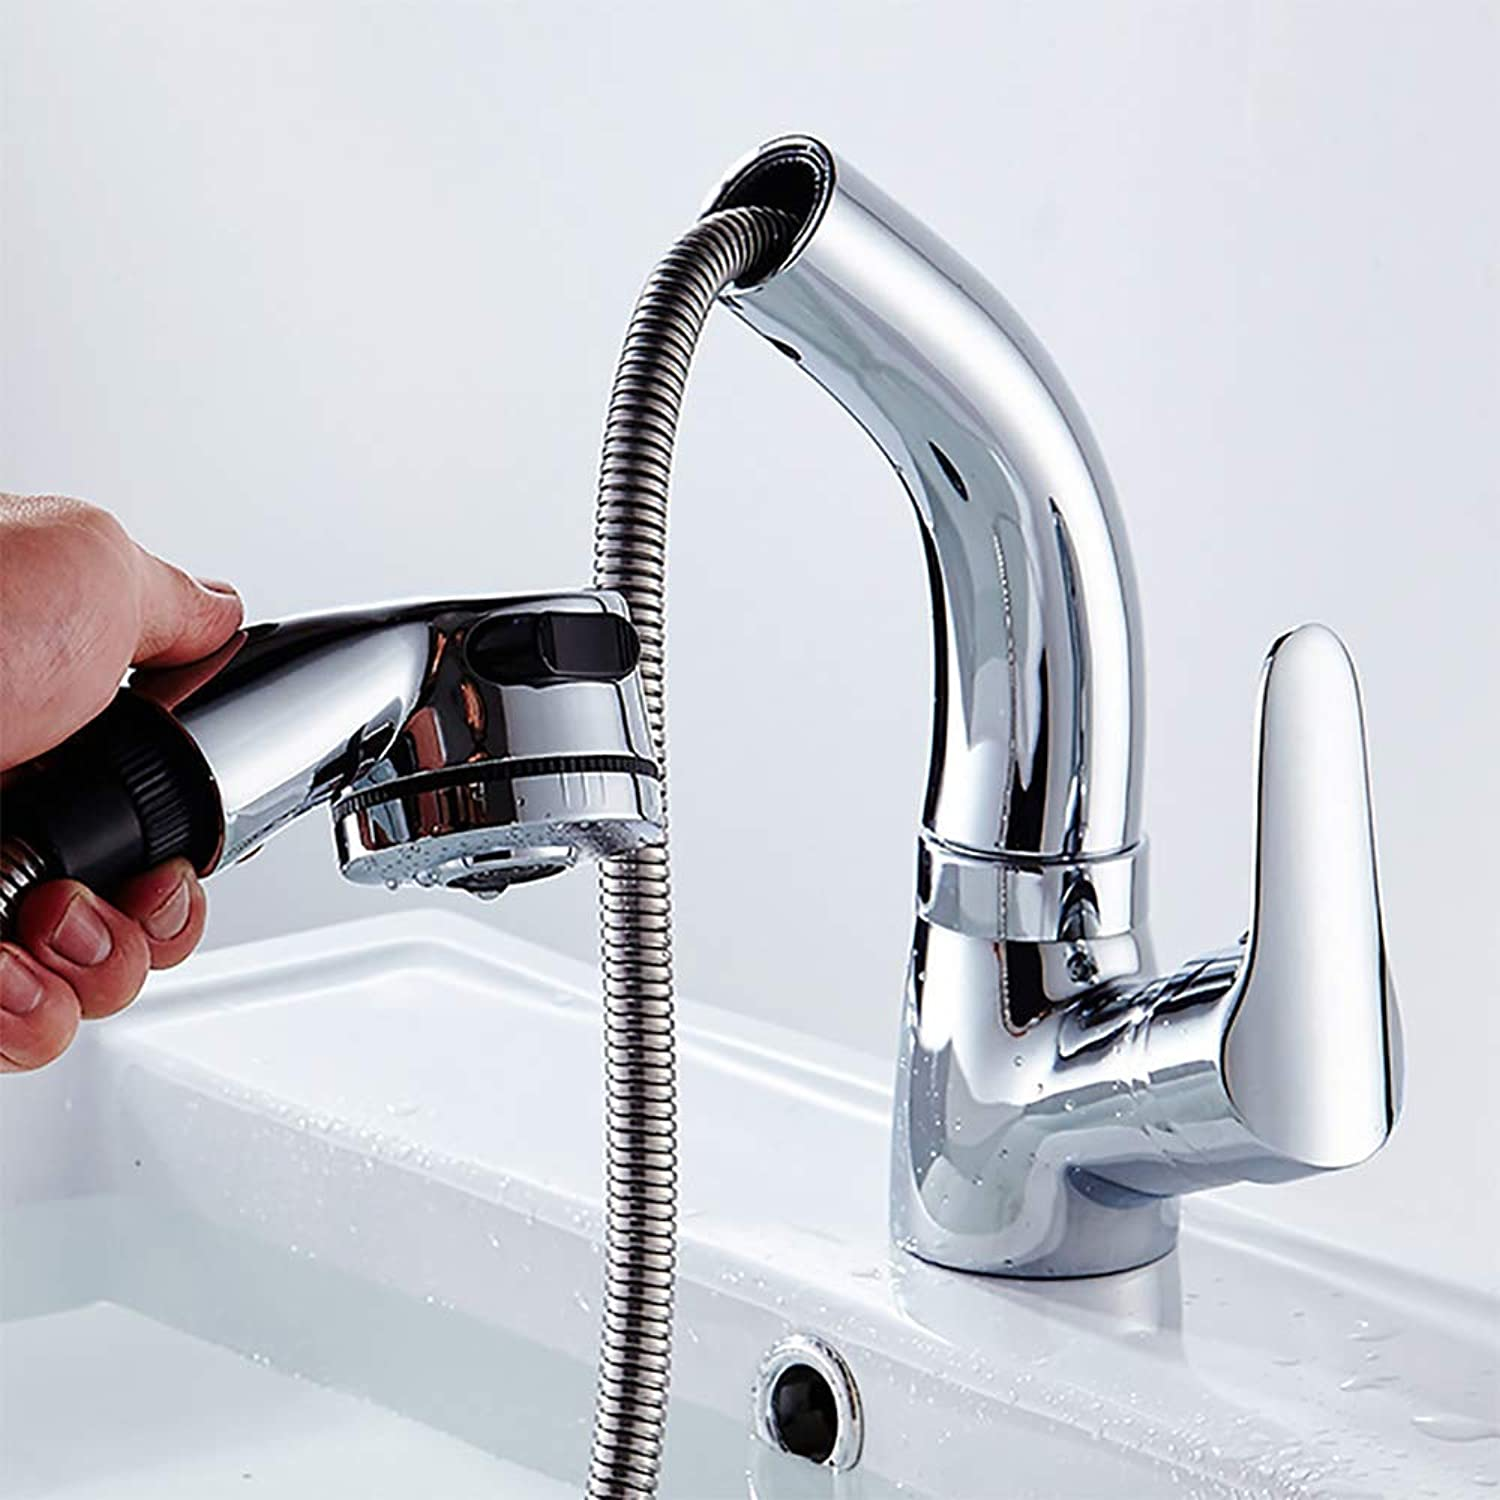 Cmccedu Hot and Cold Pull-Type Faucet Can Lift The Telescopic Basin Basin Faucet Lift Pull Faucet